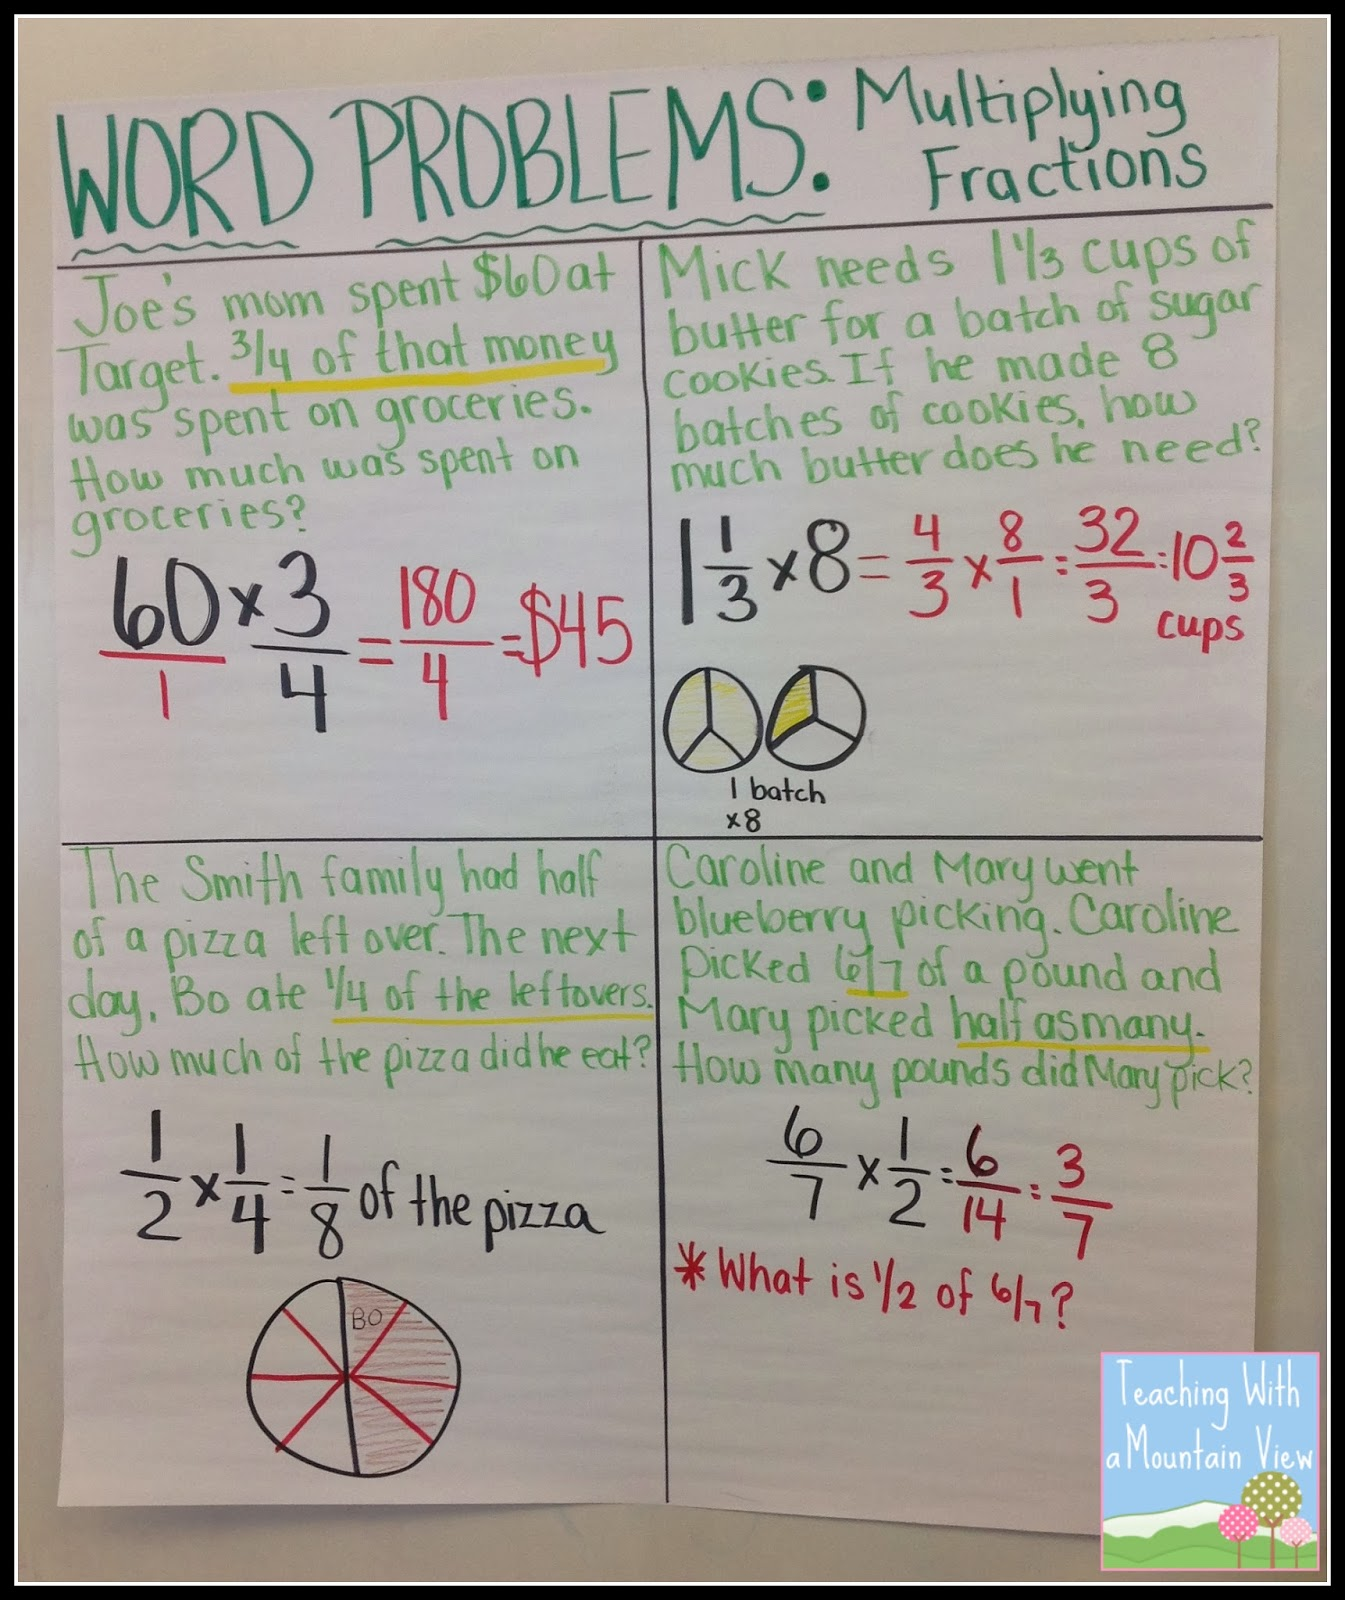 Worksheet Multiplication And Division Of Fractions Word Problems teaching with a mountain view making sense of multiplying we dissected these word problems underlined key phrases that they felt helped them to know what type problem were reading and